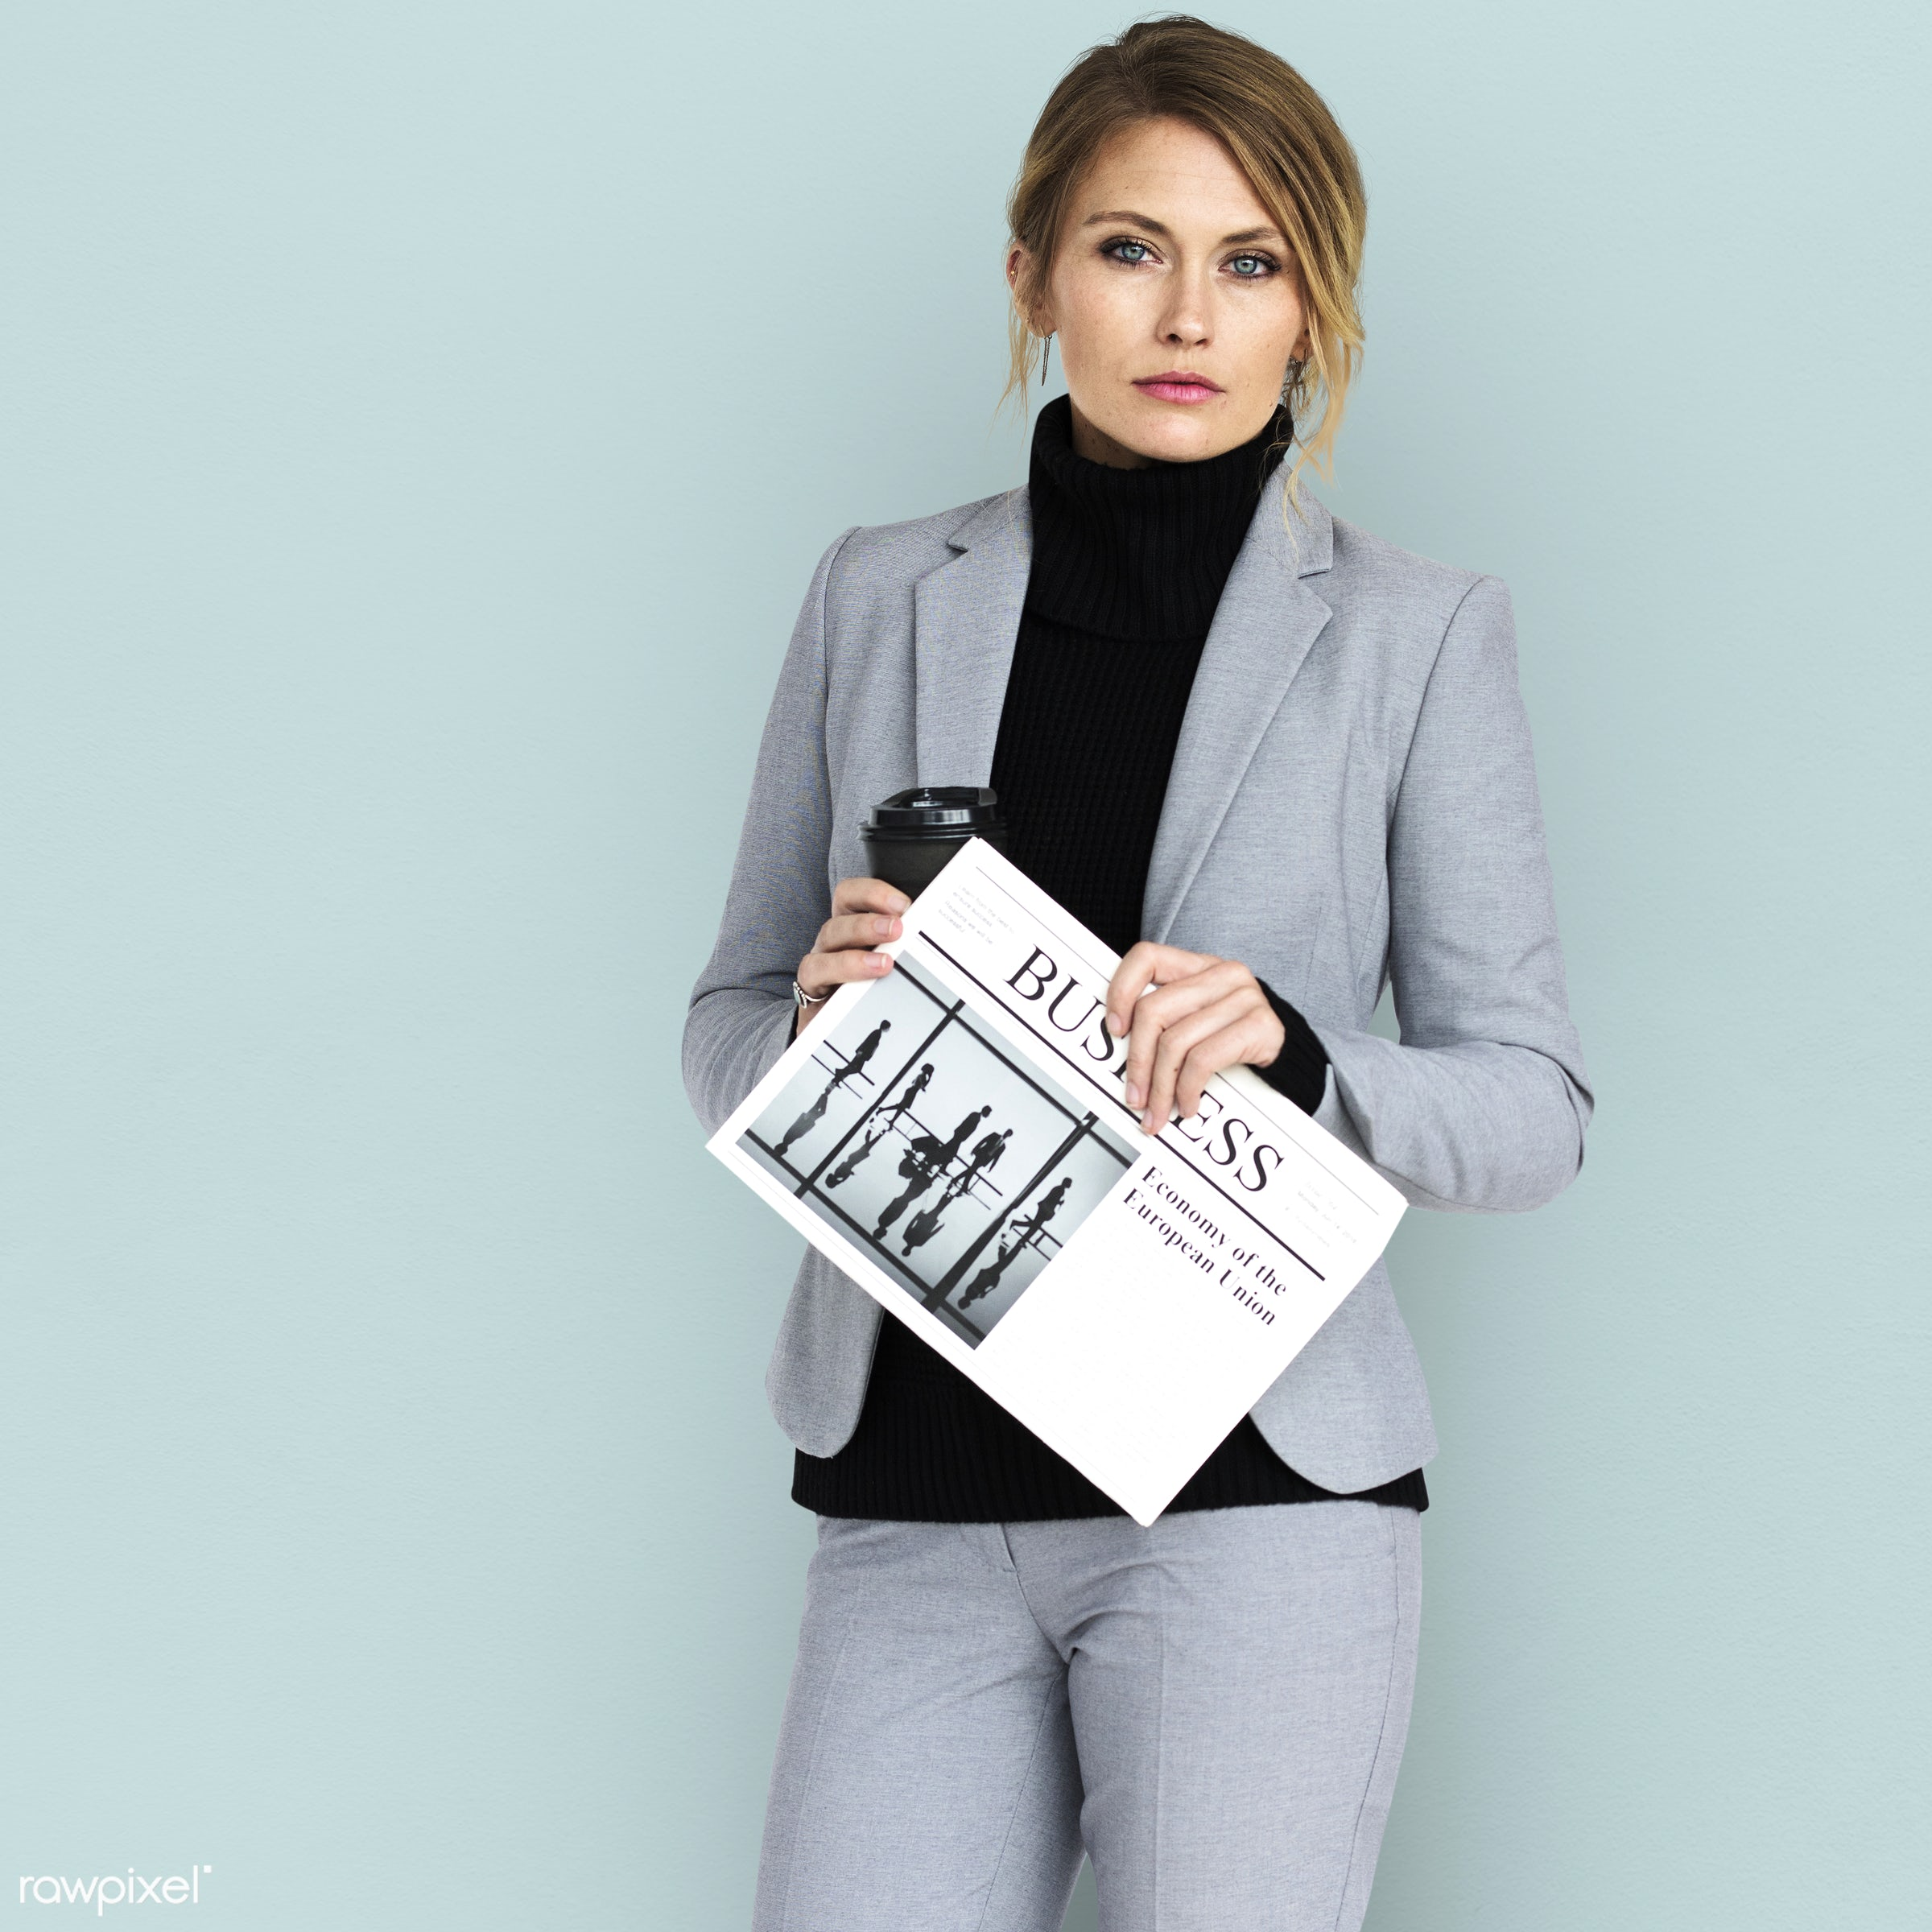 expression, studio, person, business newspaper, people, formal dressing, business, caucasian, girl, woman, work, isolated,...